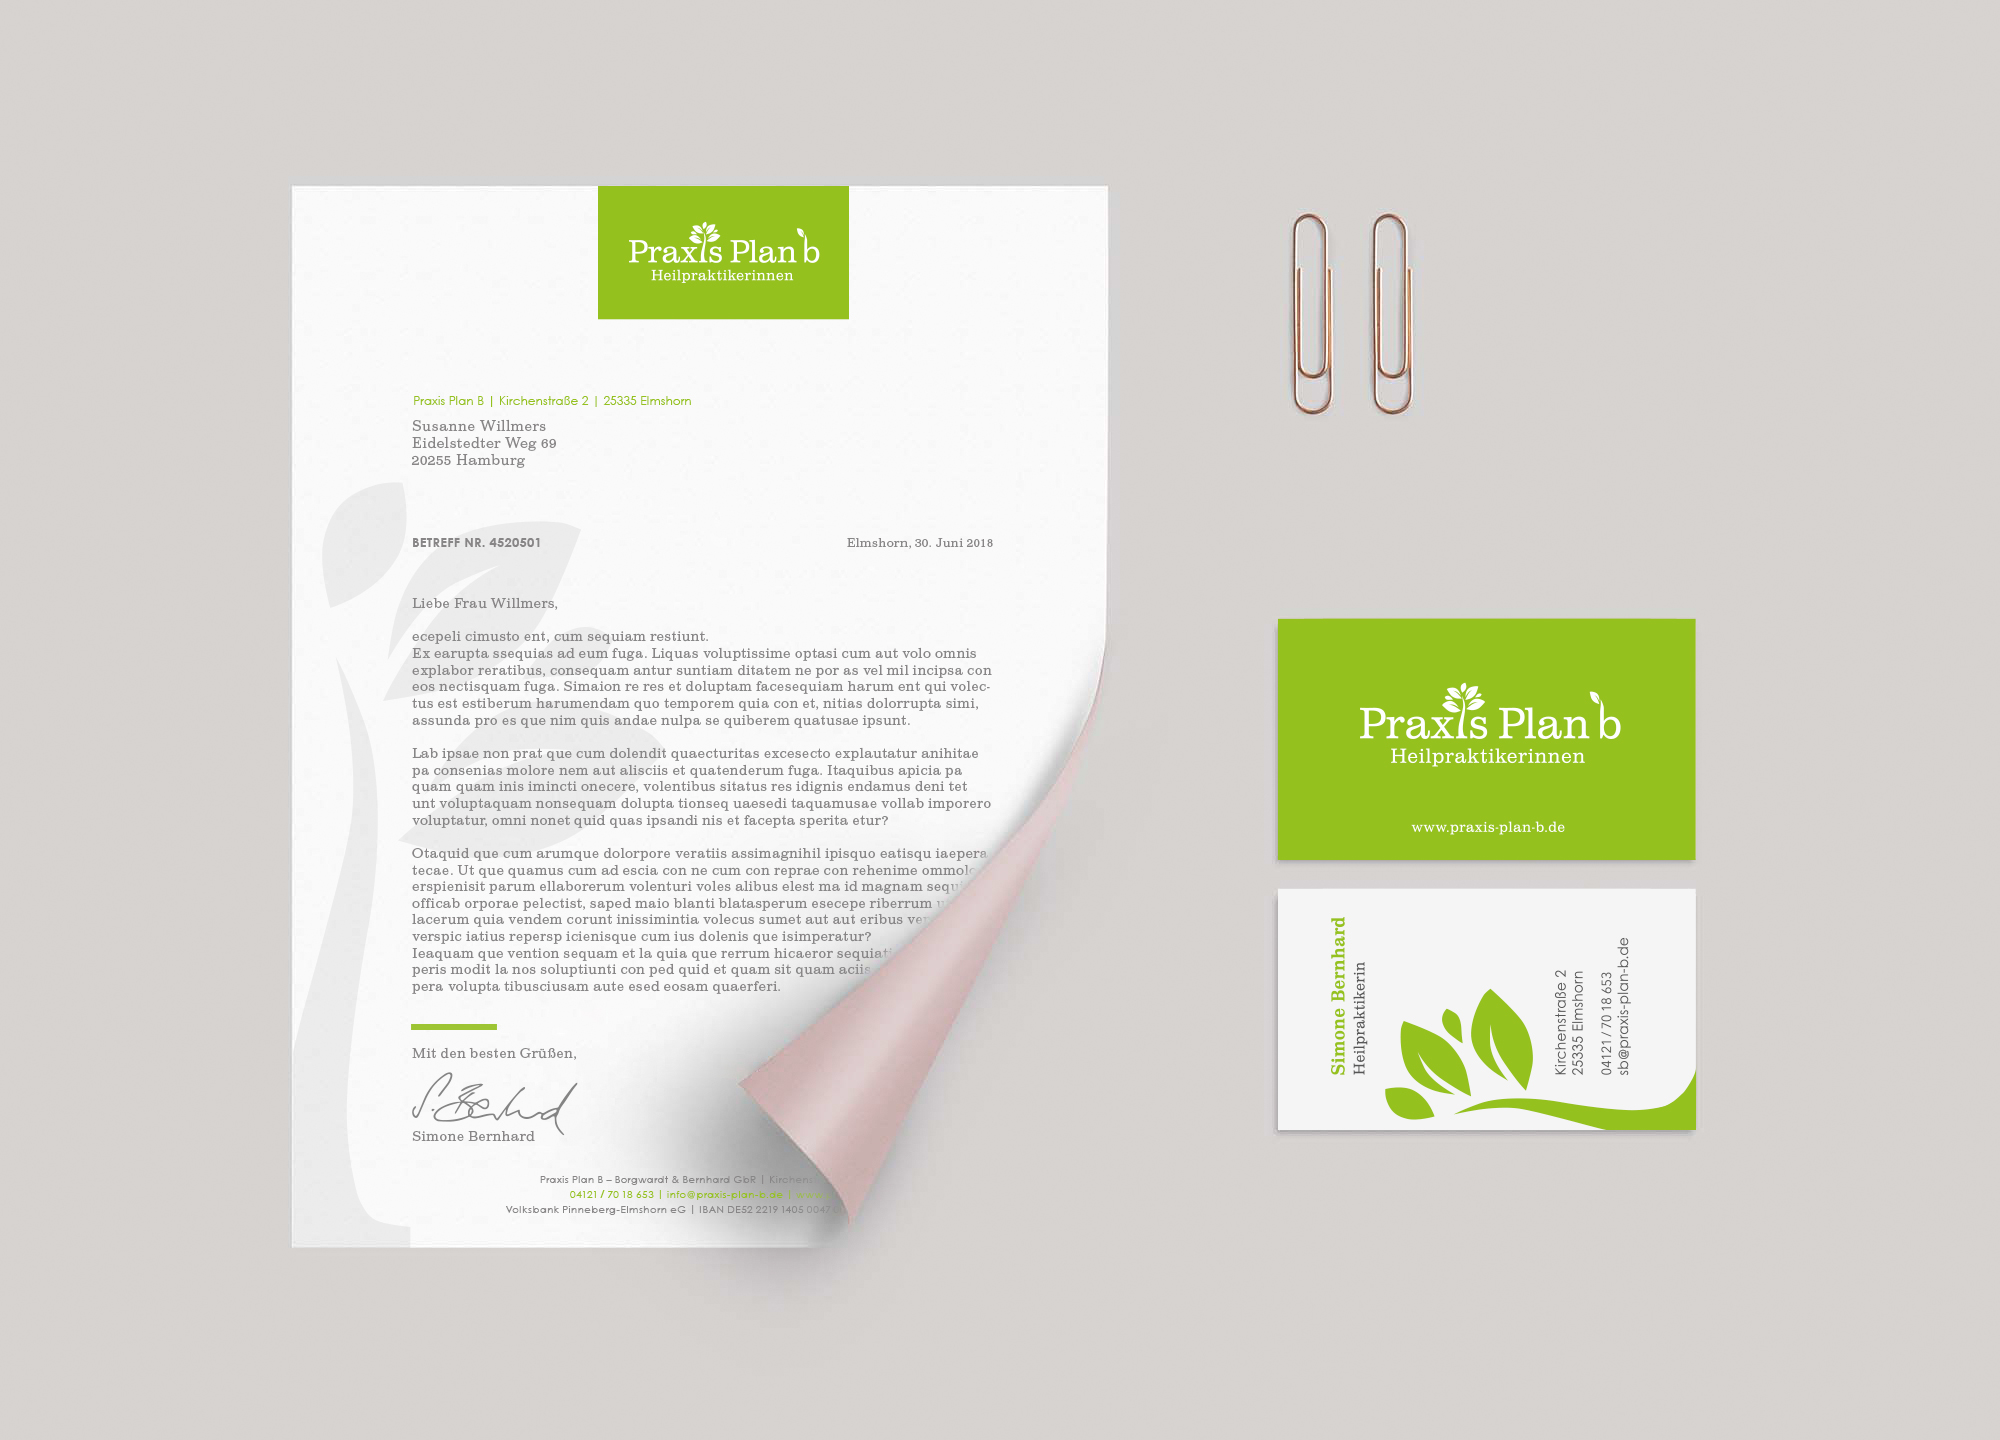 Praxis Plan b corporate identity from bob agency